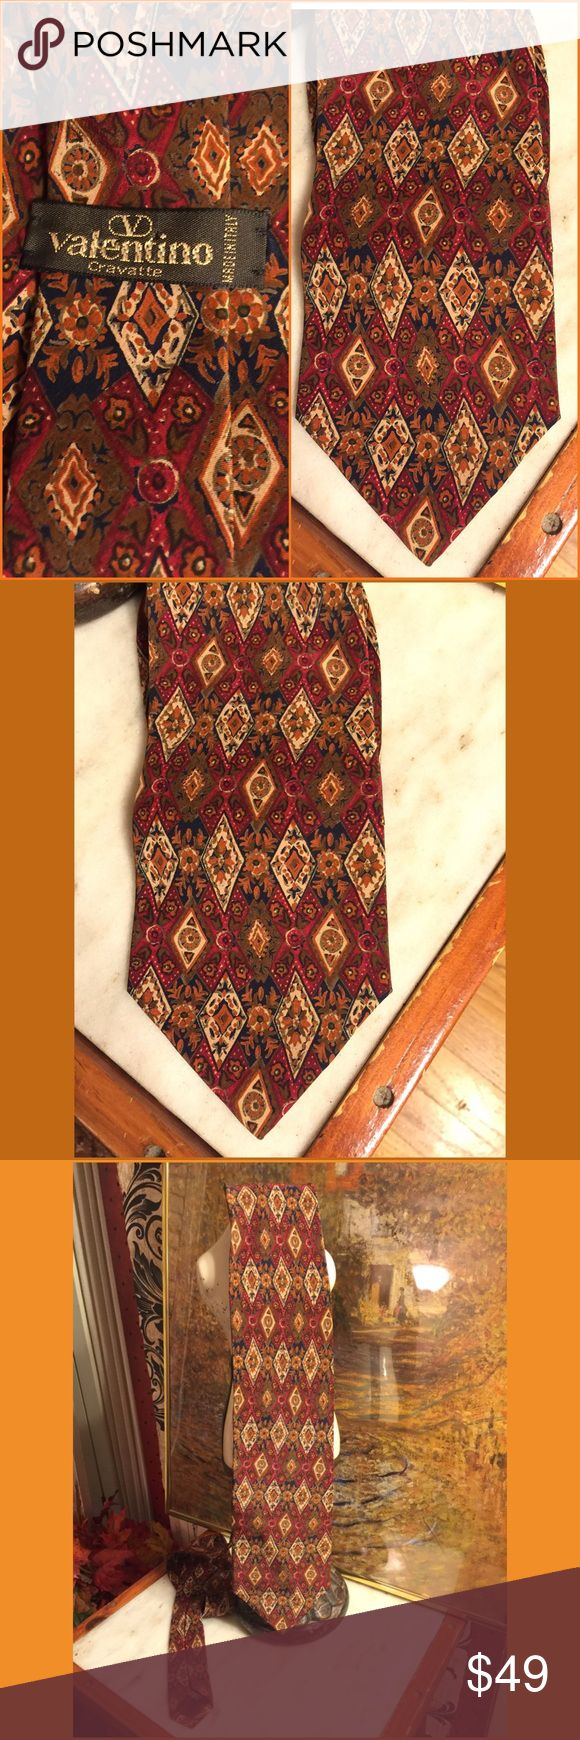 """SALE🌷VALENTINO SILK ITALIAN RED-BROWN PRINT TIE VIBRANT AND RICH SILK, ITALIAN MADE VALENTINO MEN'S TIE. 57"""" LONG TIP TO TIP. 4"""" WIDE AT BOTTOM. RETAIL $399.. NWOT-NEVER WORN. PLEASE DO NOT HESITATE TO ASK ANY QUESTIONS! #nwot #silk #italianmade #menstie #reddishbrown #richprint #tie Valentino Accessories Ties"""